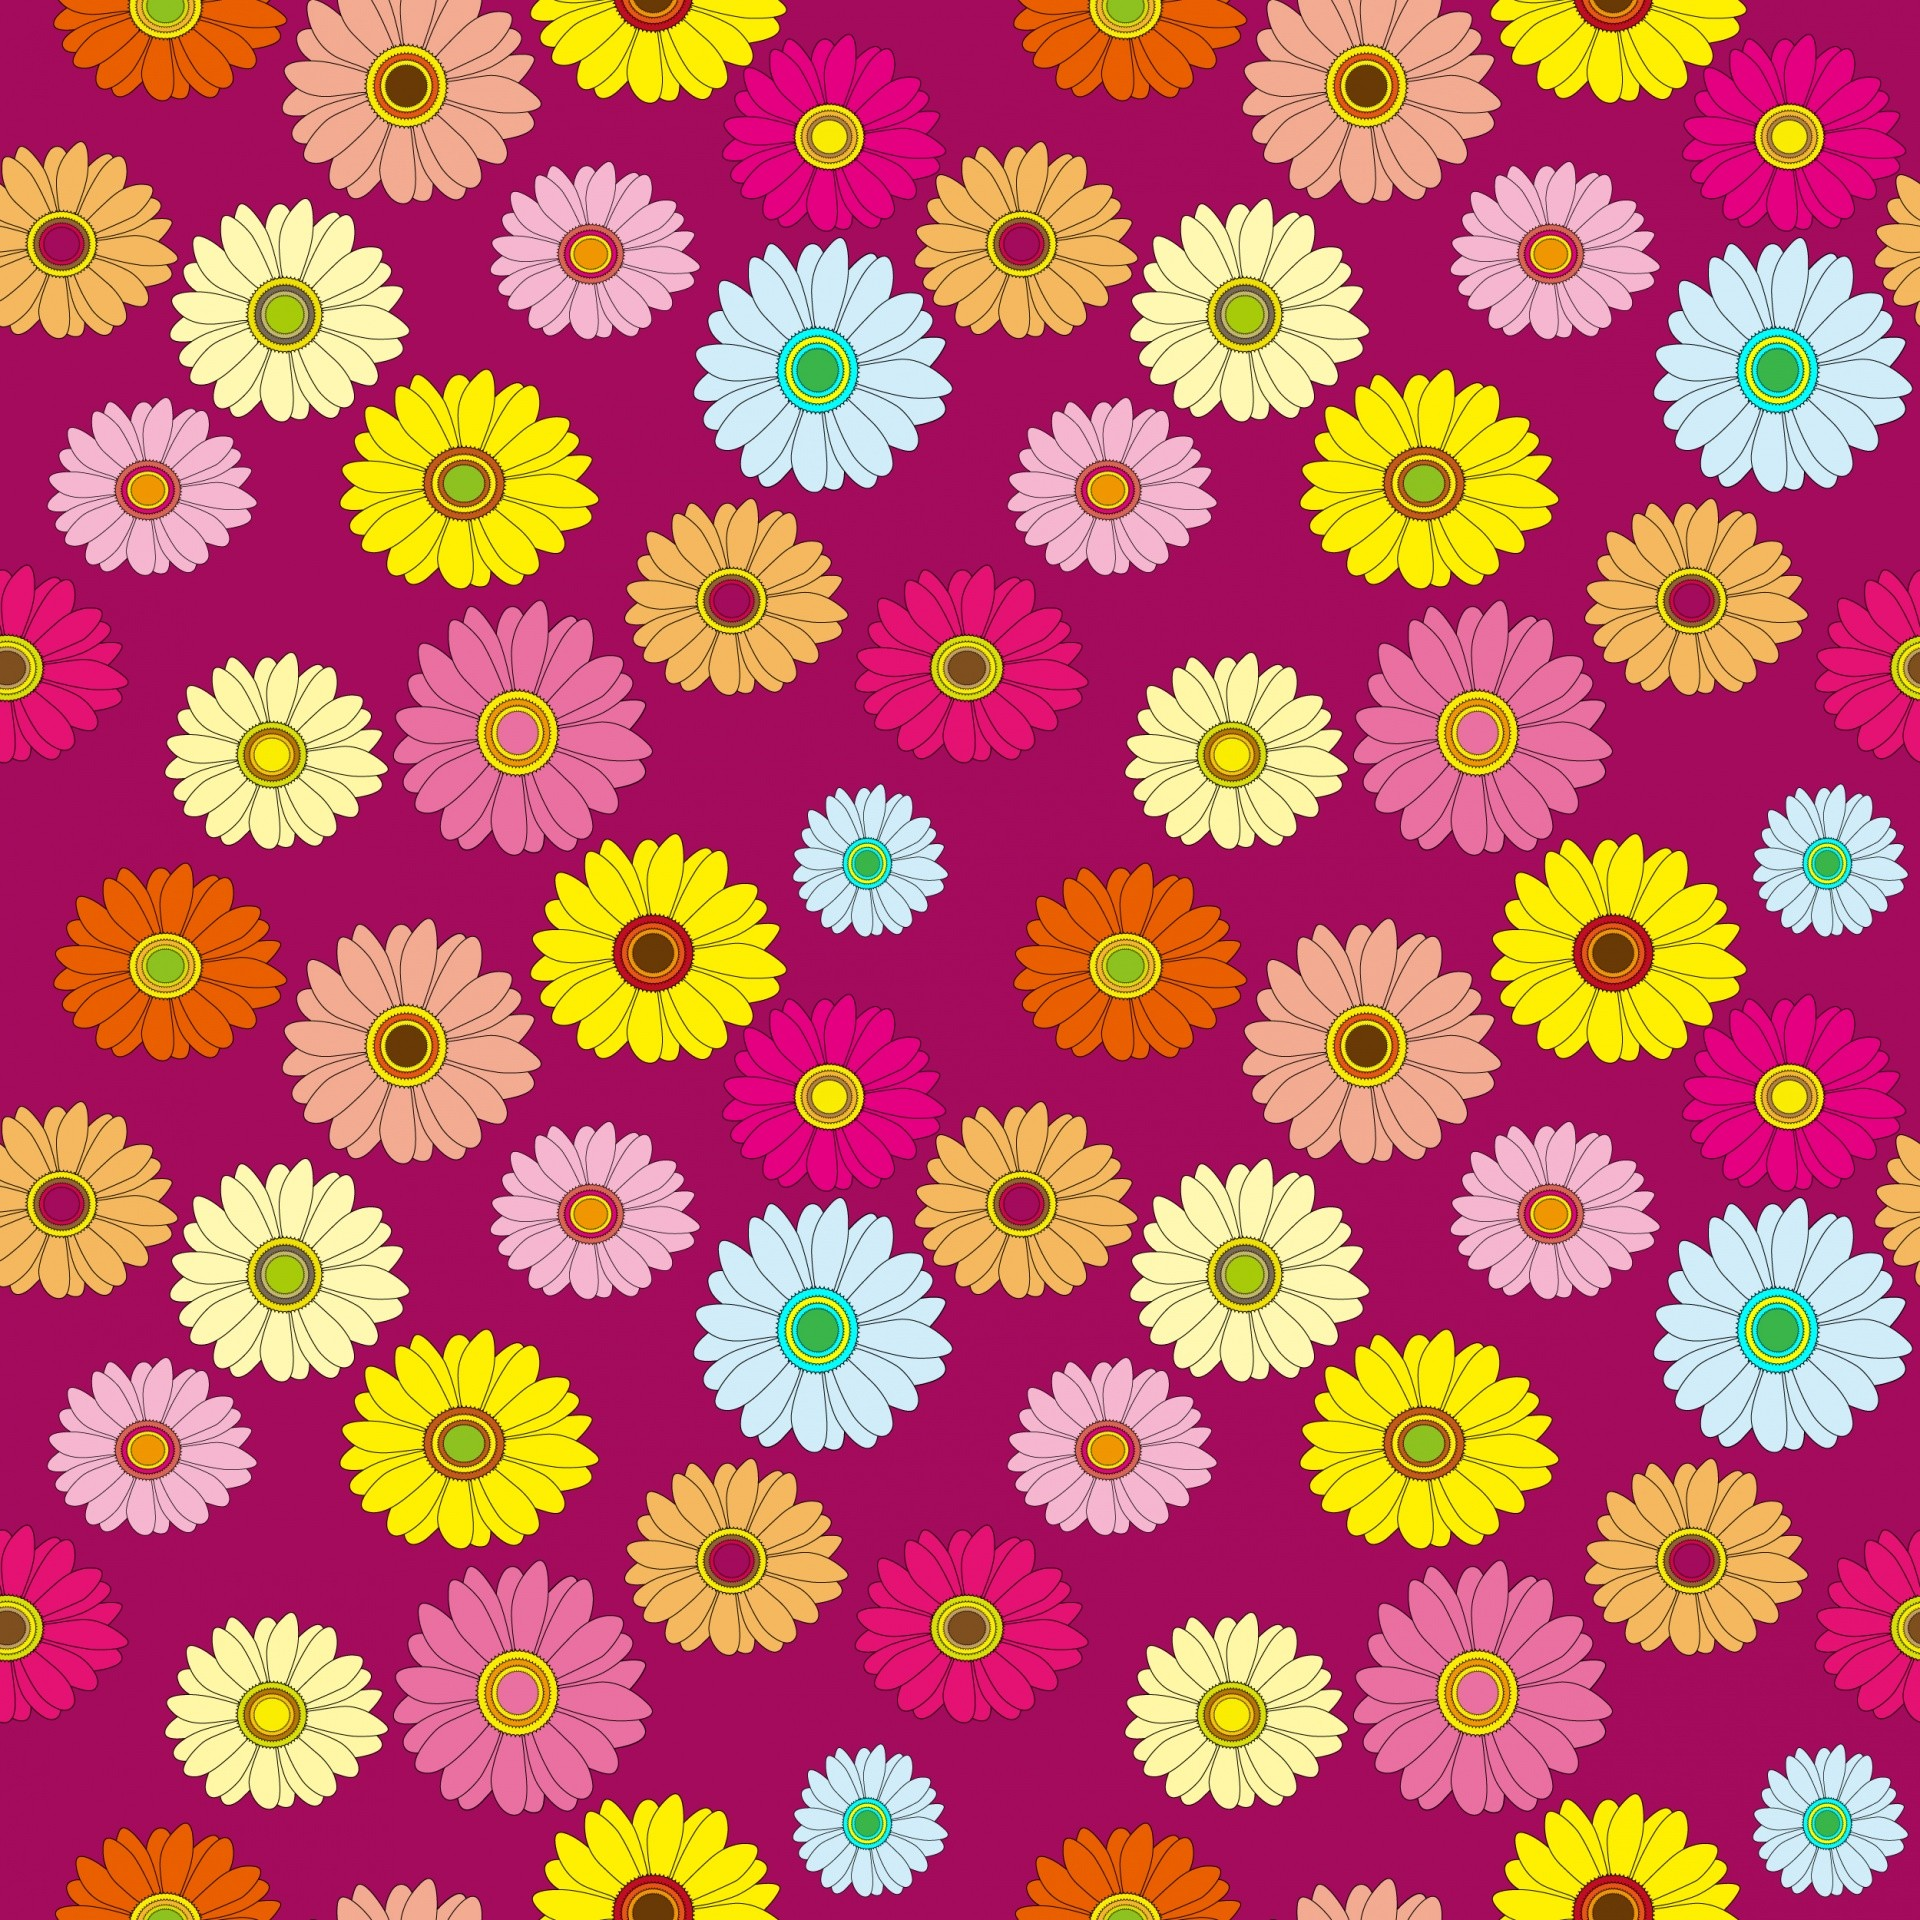 Colorful Floral Background Free Stock Photo Public Domain Pictures Pattern  Wallpaper. make a bedroom. …